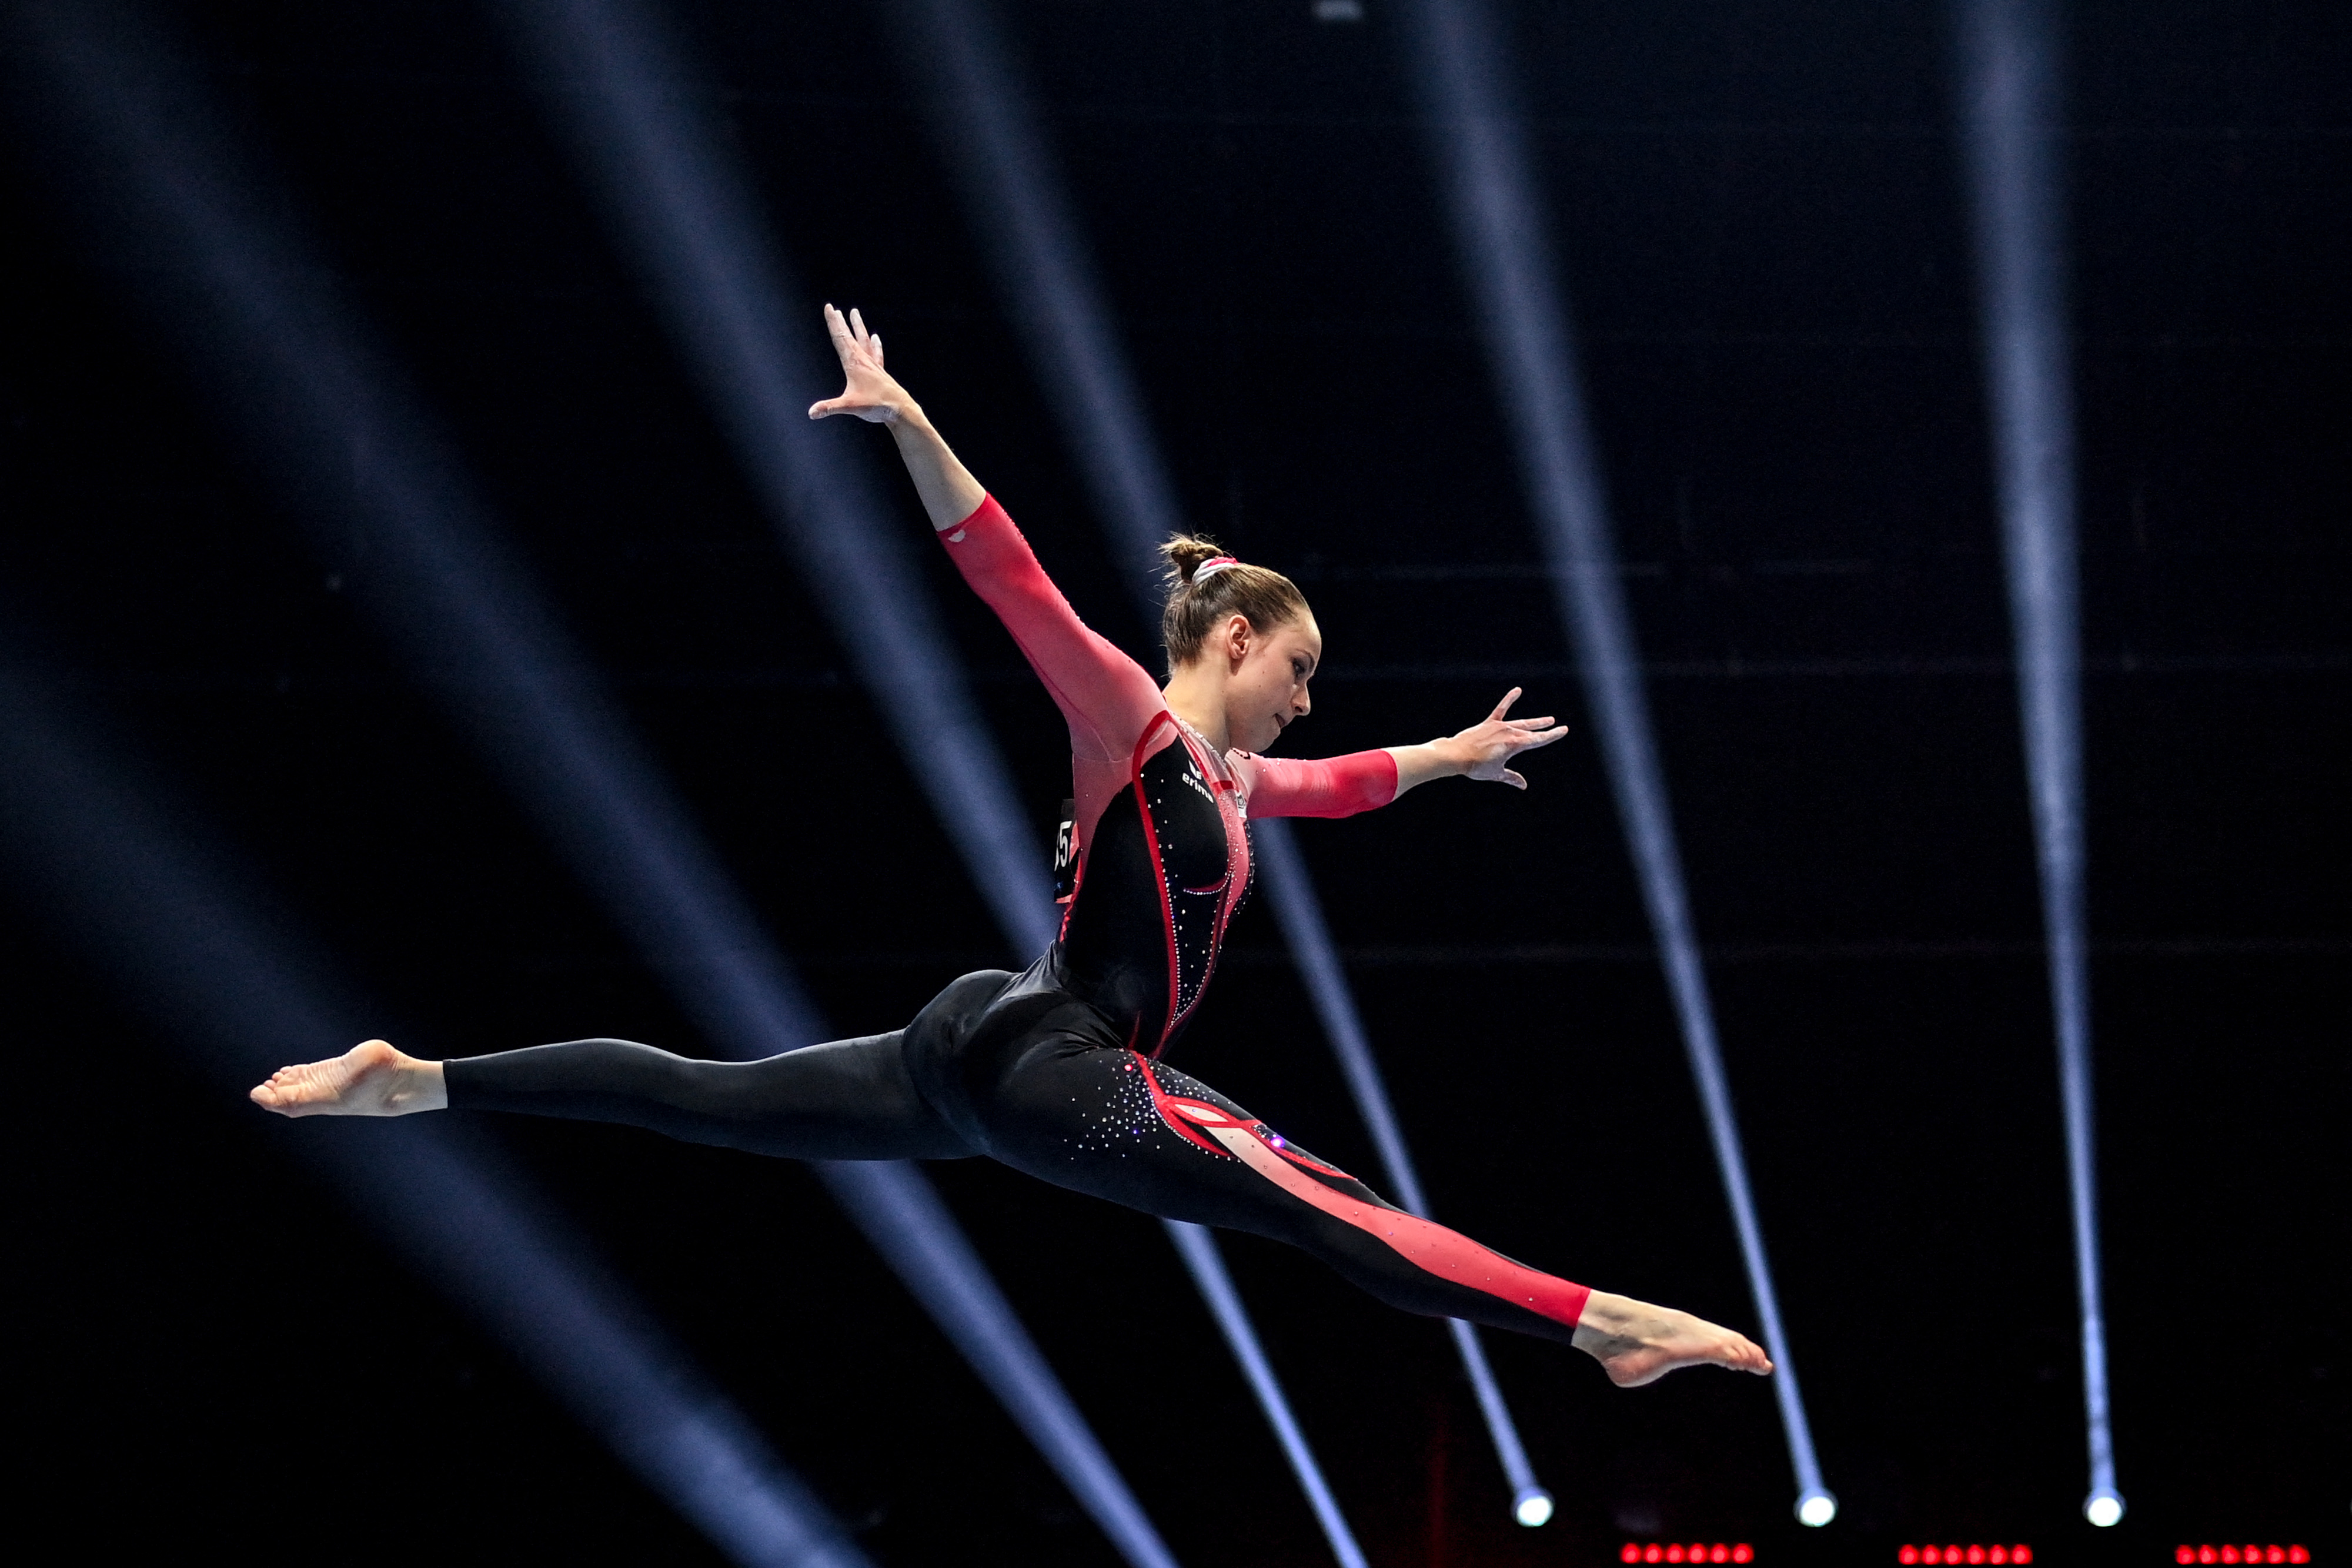 Germany's Sarah Voss competes in the Women's beam qualifications during European Artistic Gymnastics Championships at the St Jakobshalle, in Basel, on April 21, 2021.